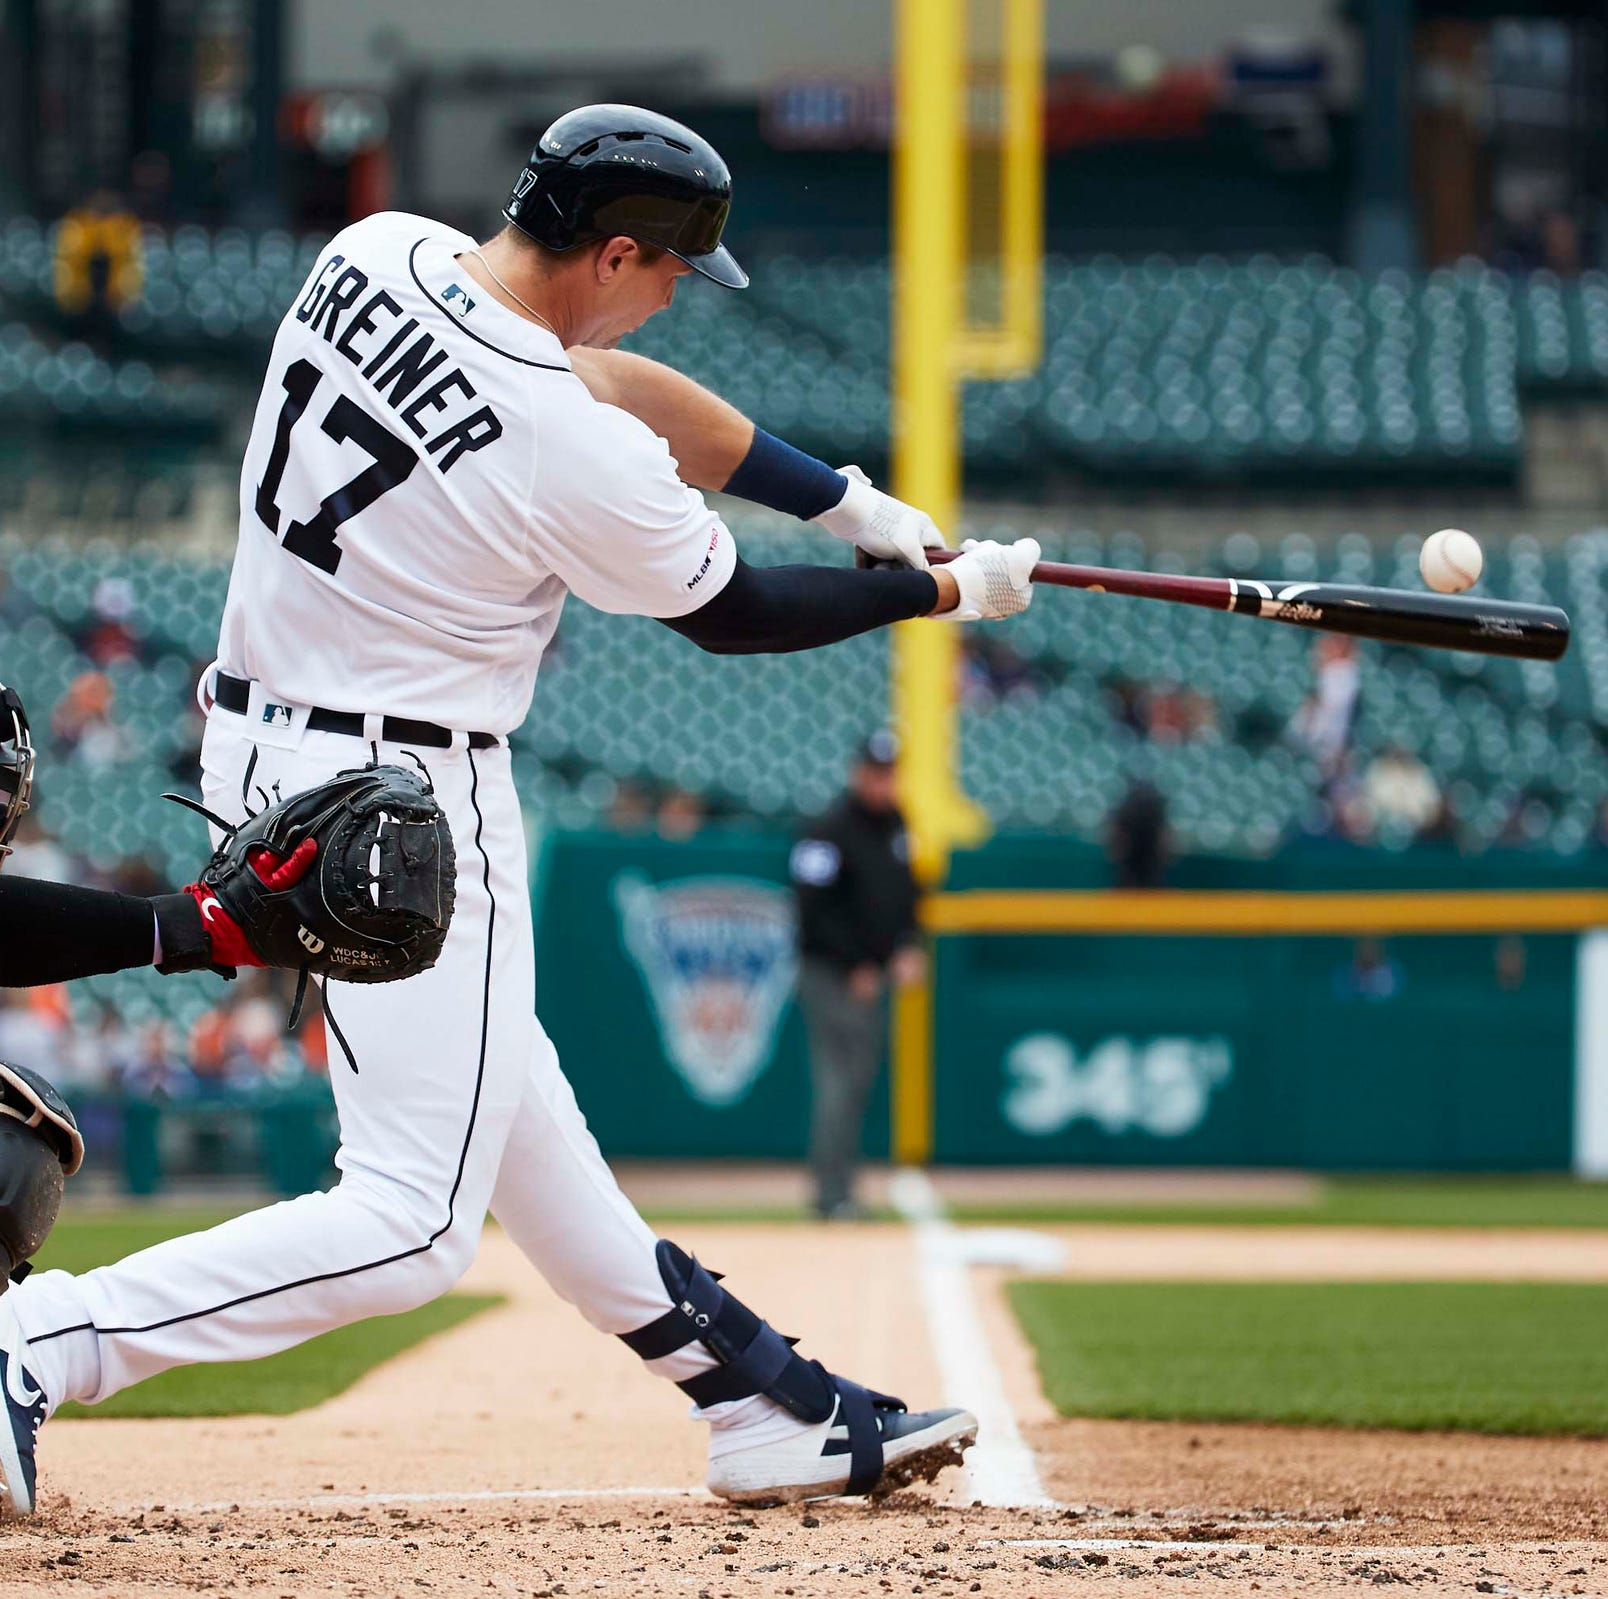 """Detroit Tigers makes fun, after ugly victory ends 5-game Skid """"class ="""" more-section-stories-thumb"""